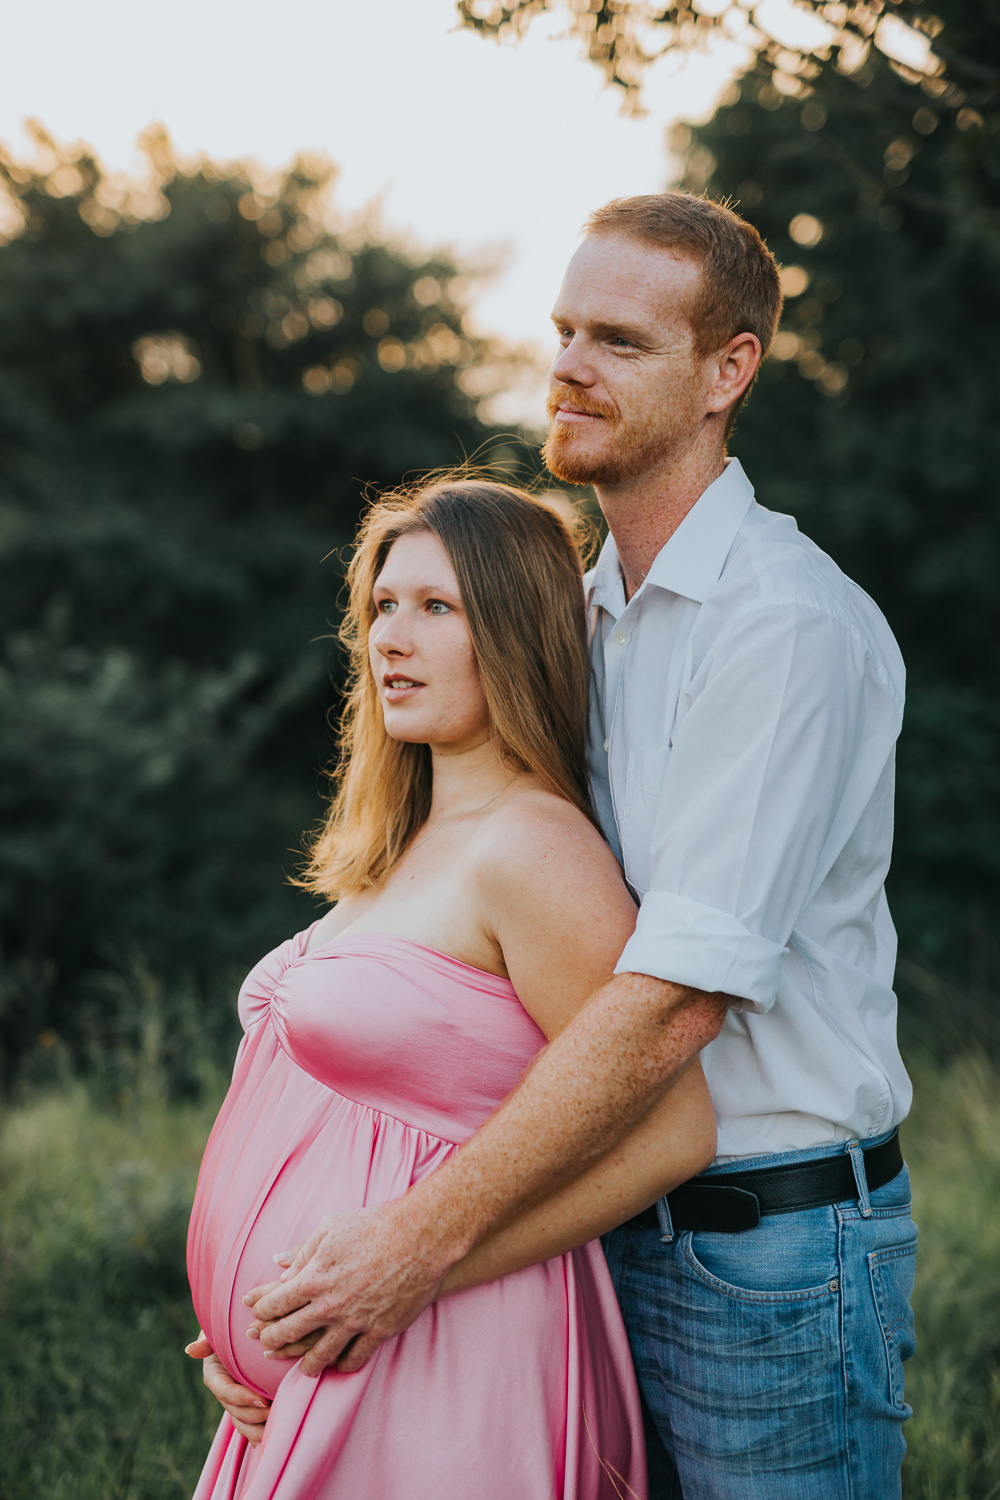 Maternity photoshoot-3.jpg